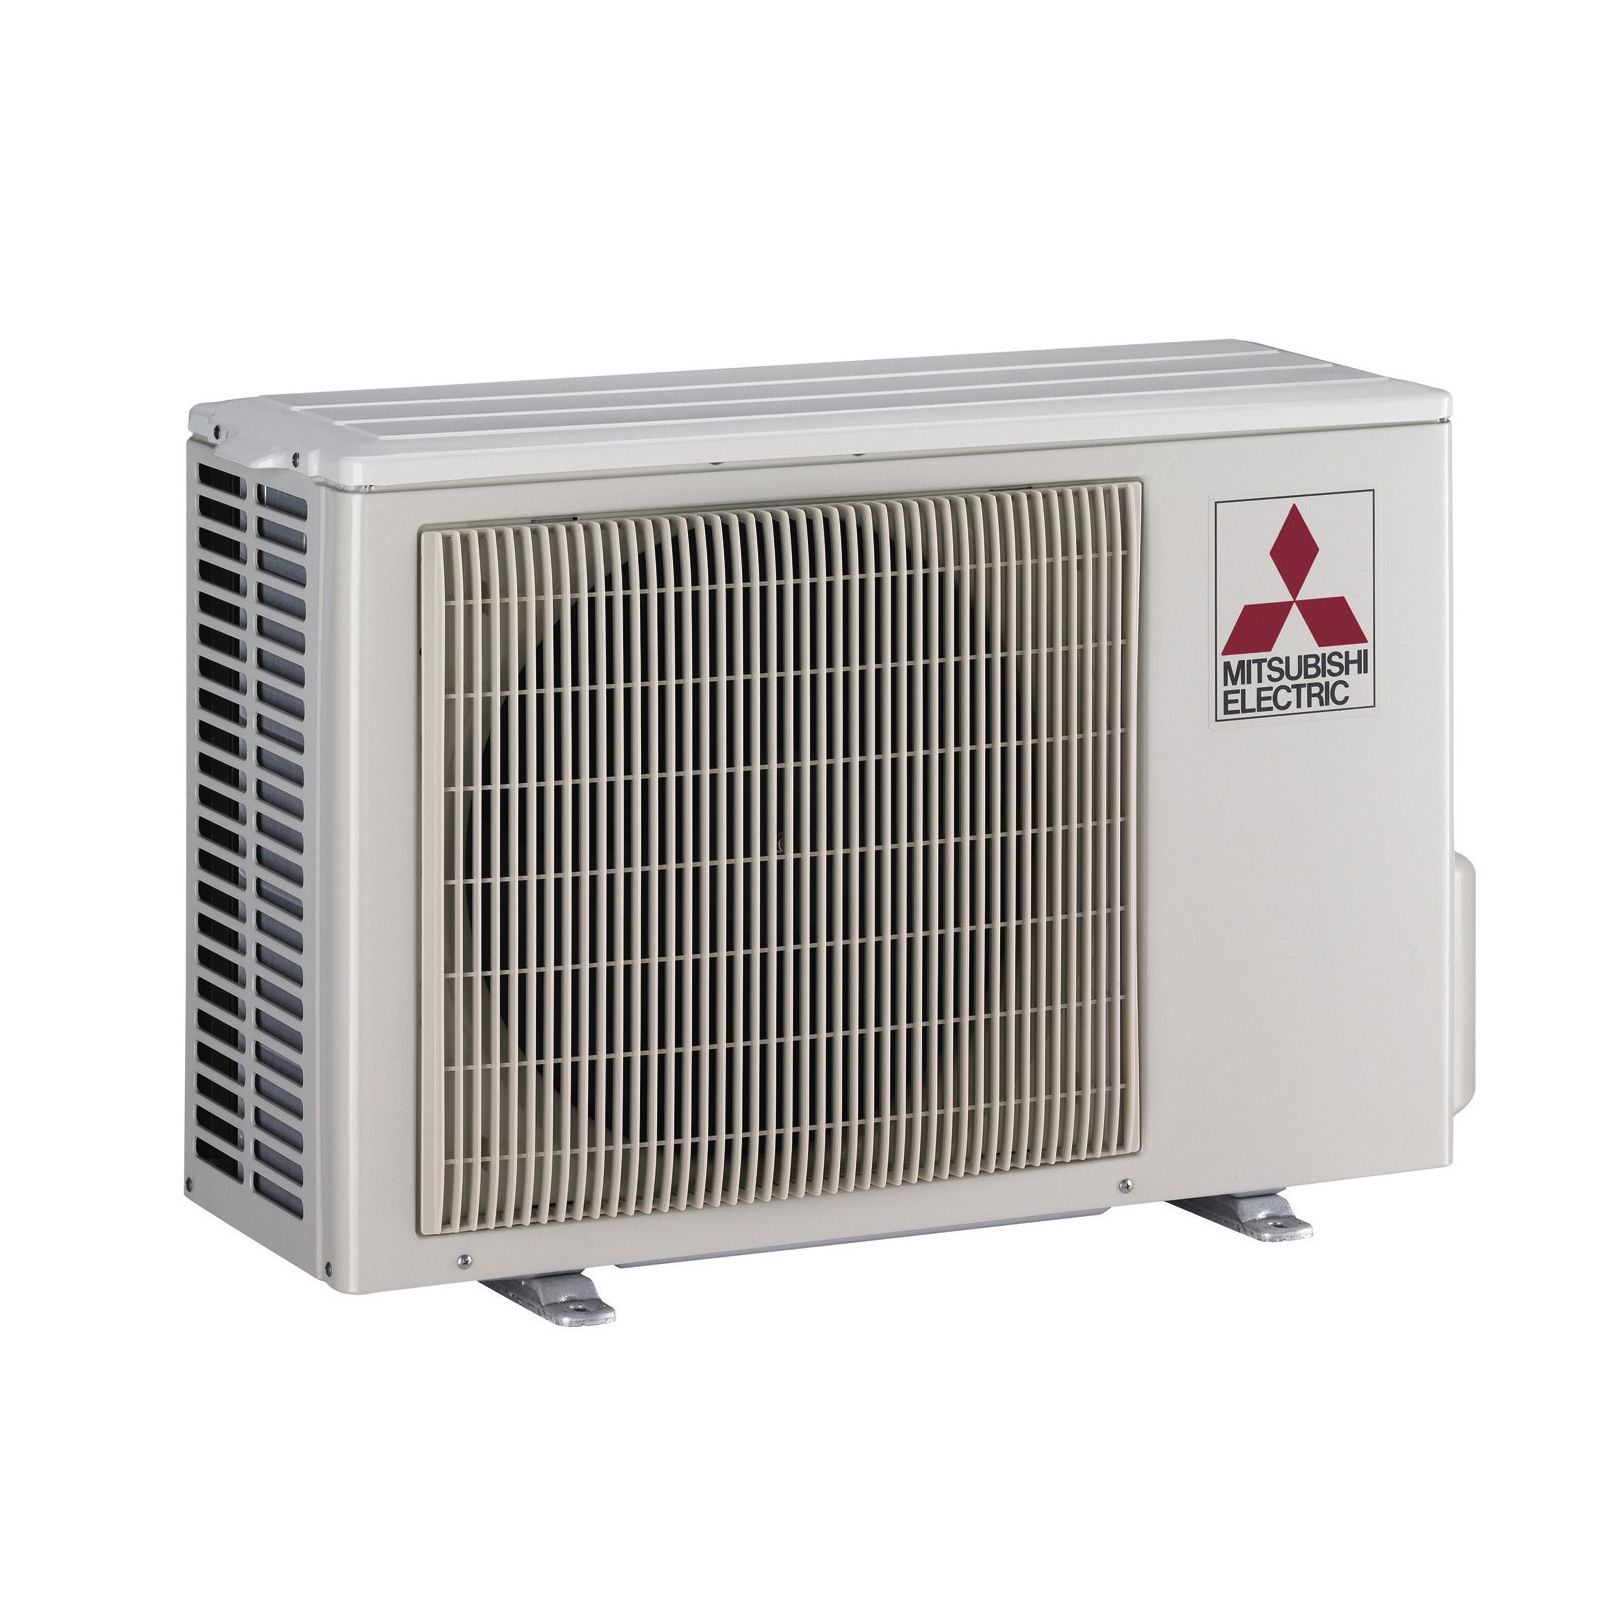 2. Mitsubishi Electric сплит-система настенный MSZ-HJ50VA/MUZ-HJ50 VA (серия Classic Inverter)